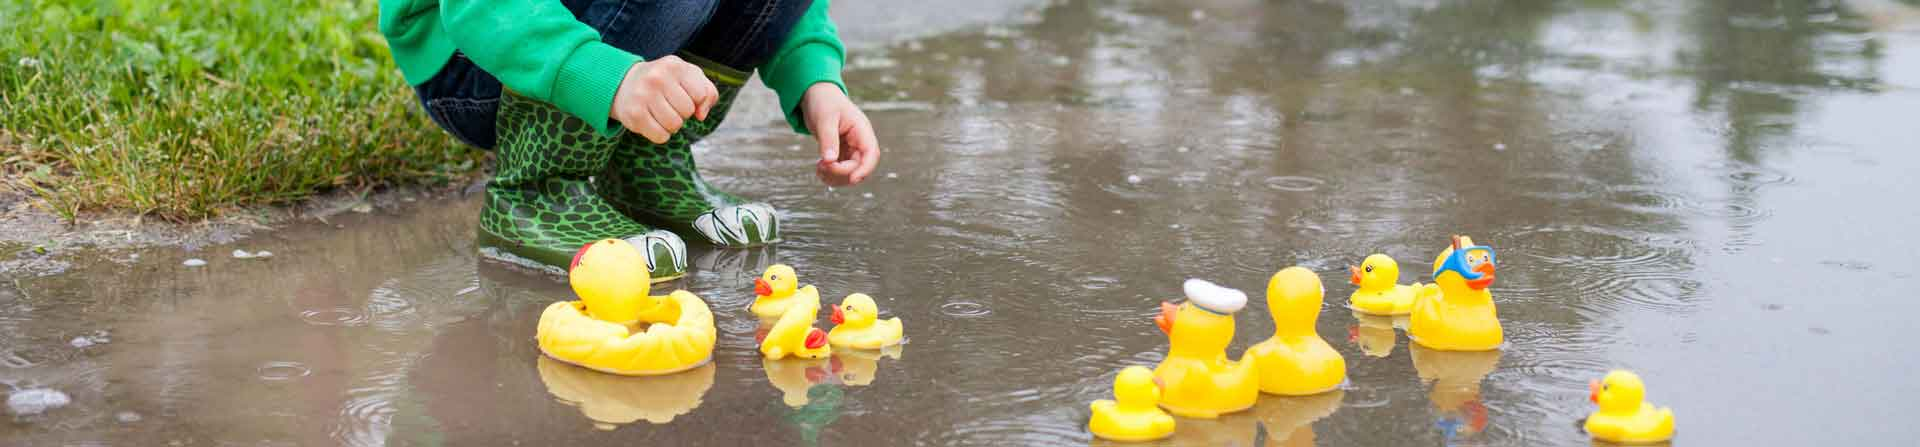 young child playing with rubber ducks in a puddle